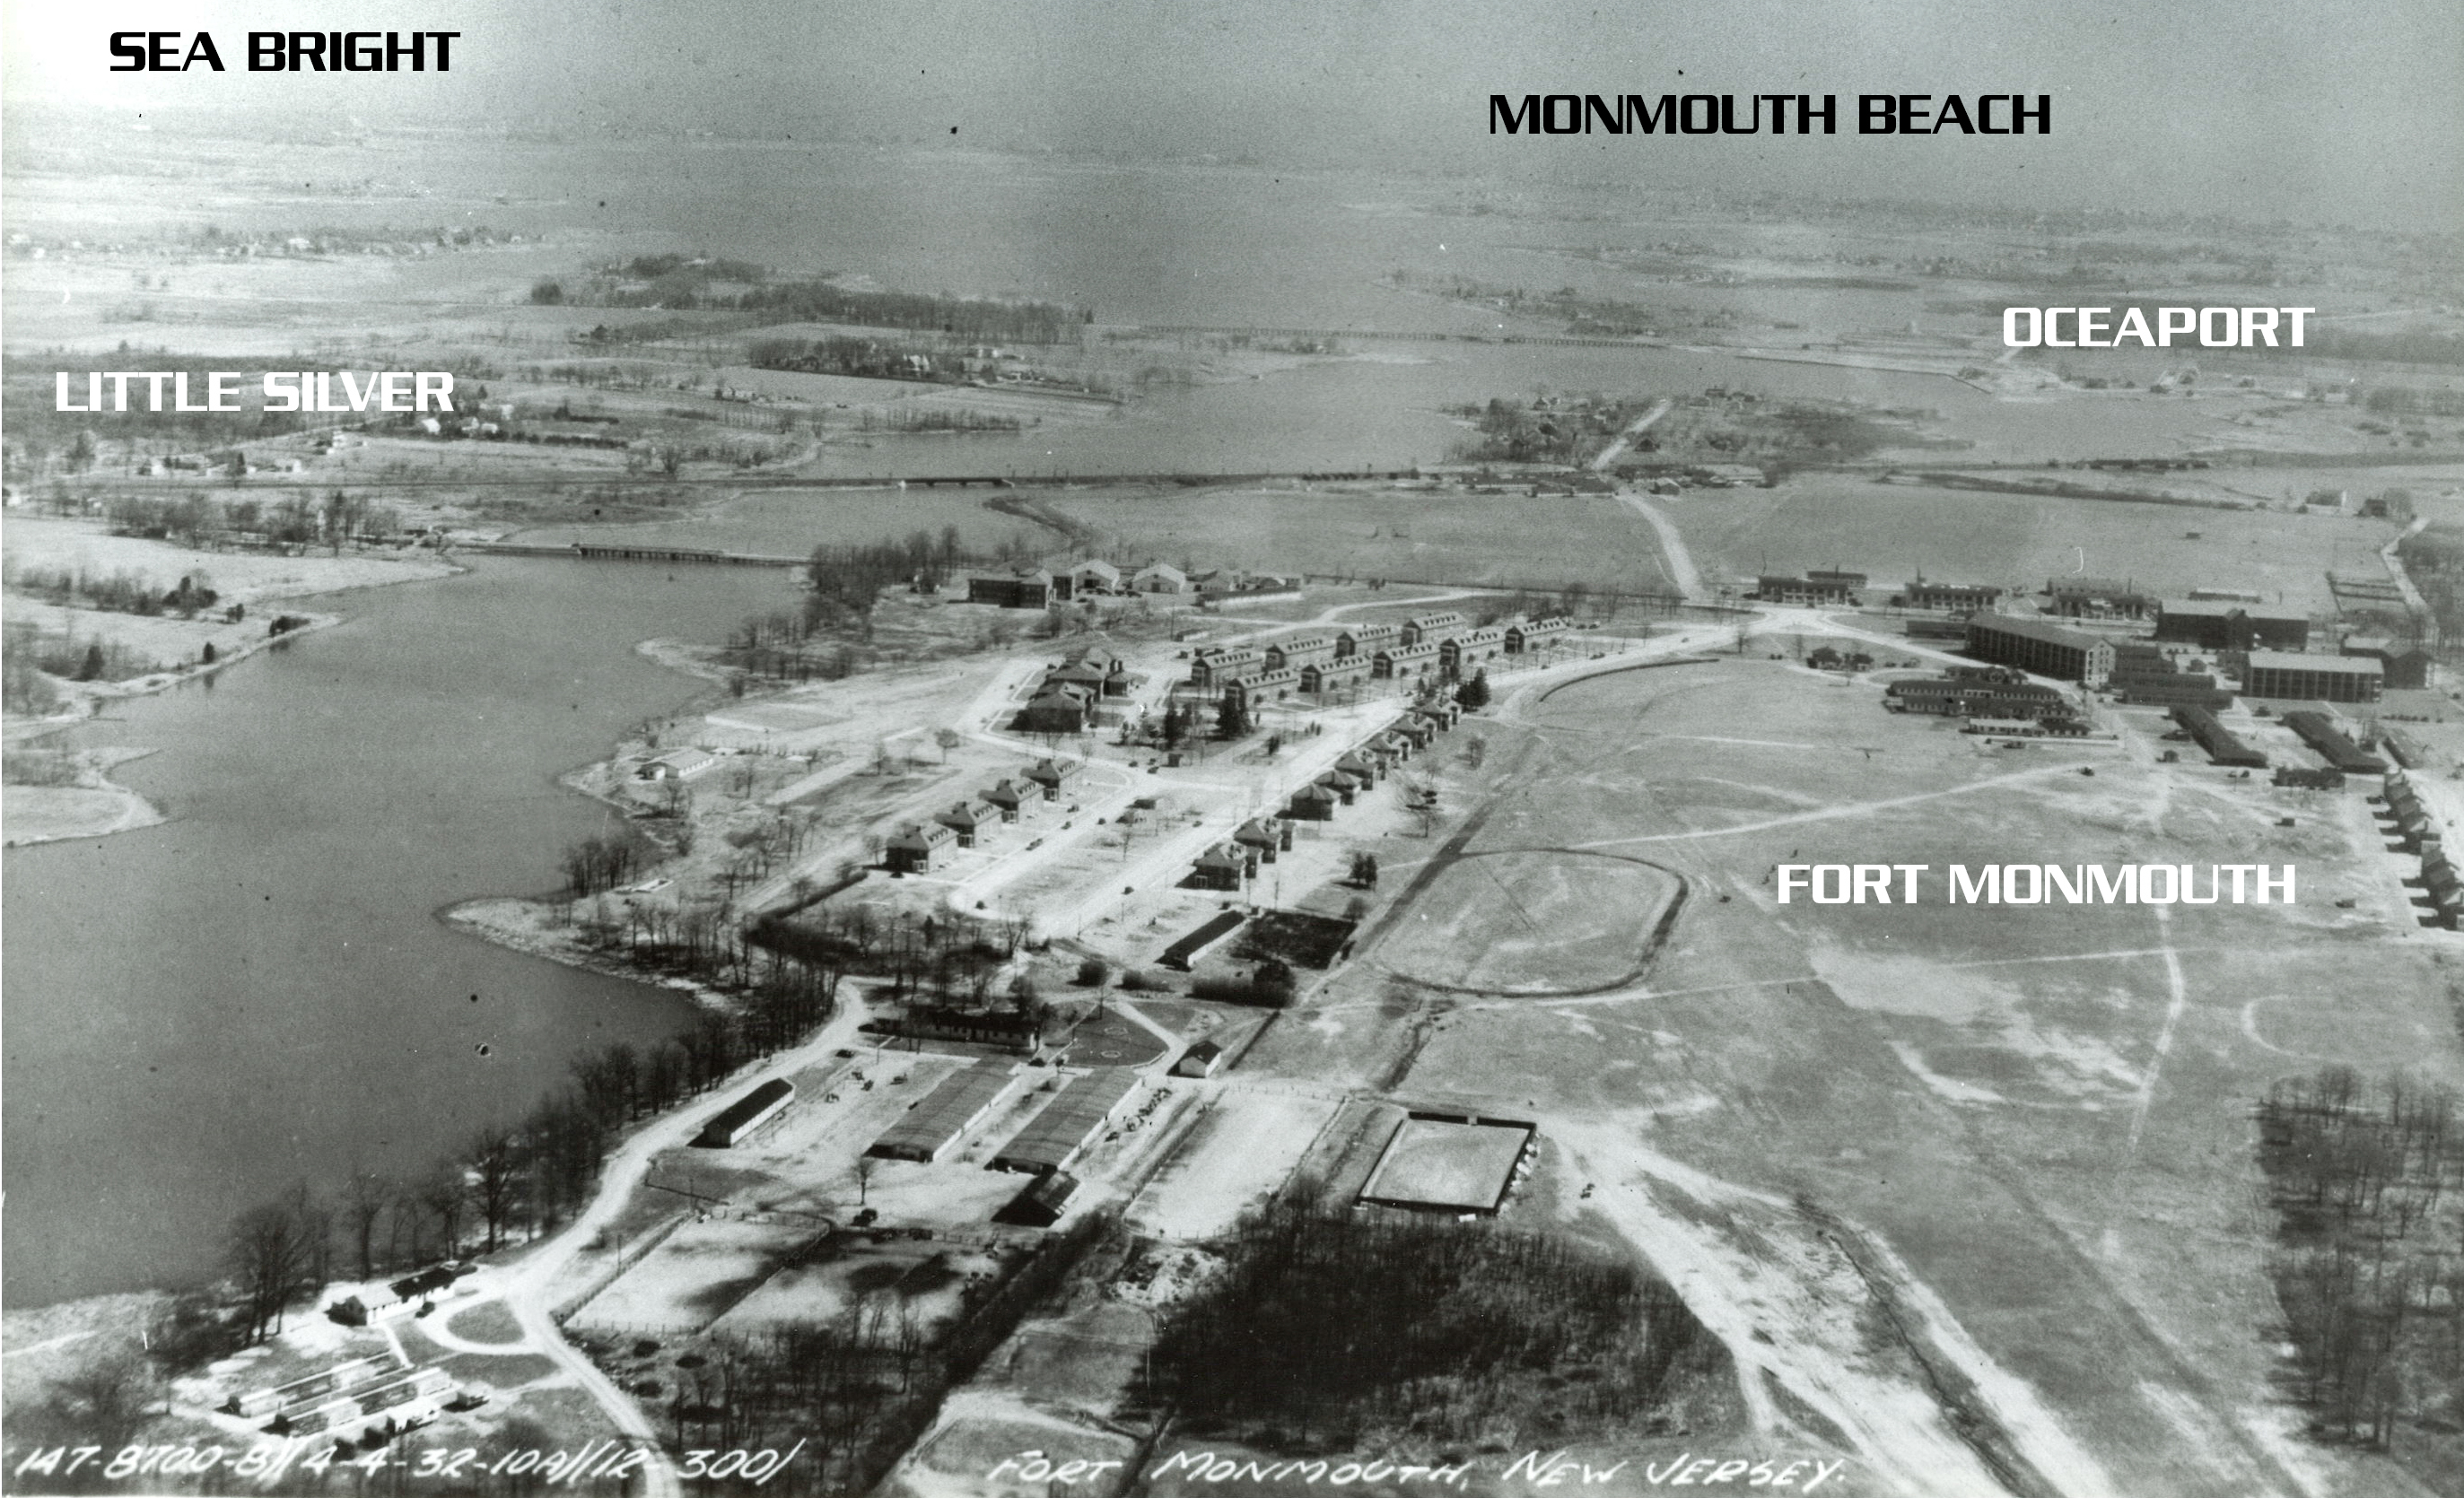 Images of Fort Monmouth circa 1930 from The Graphics Guy